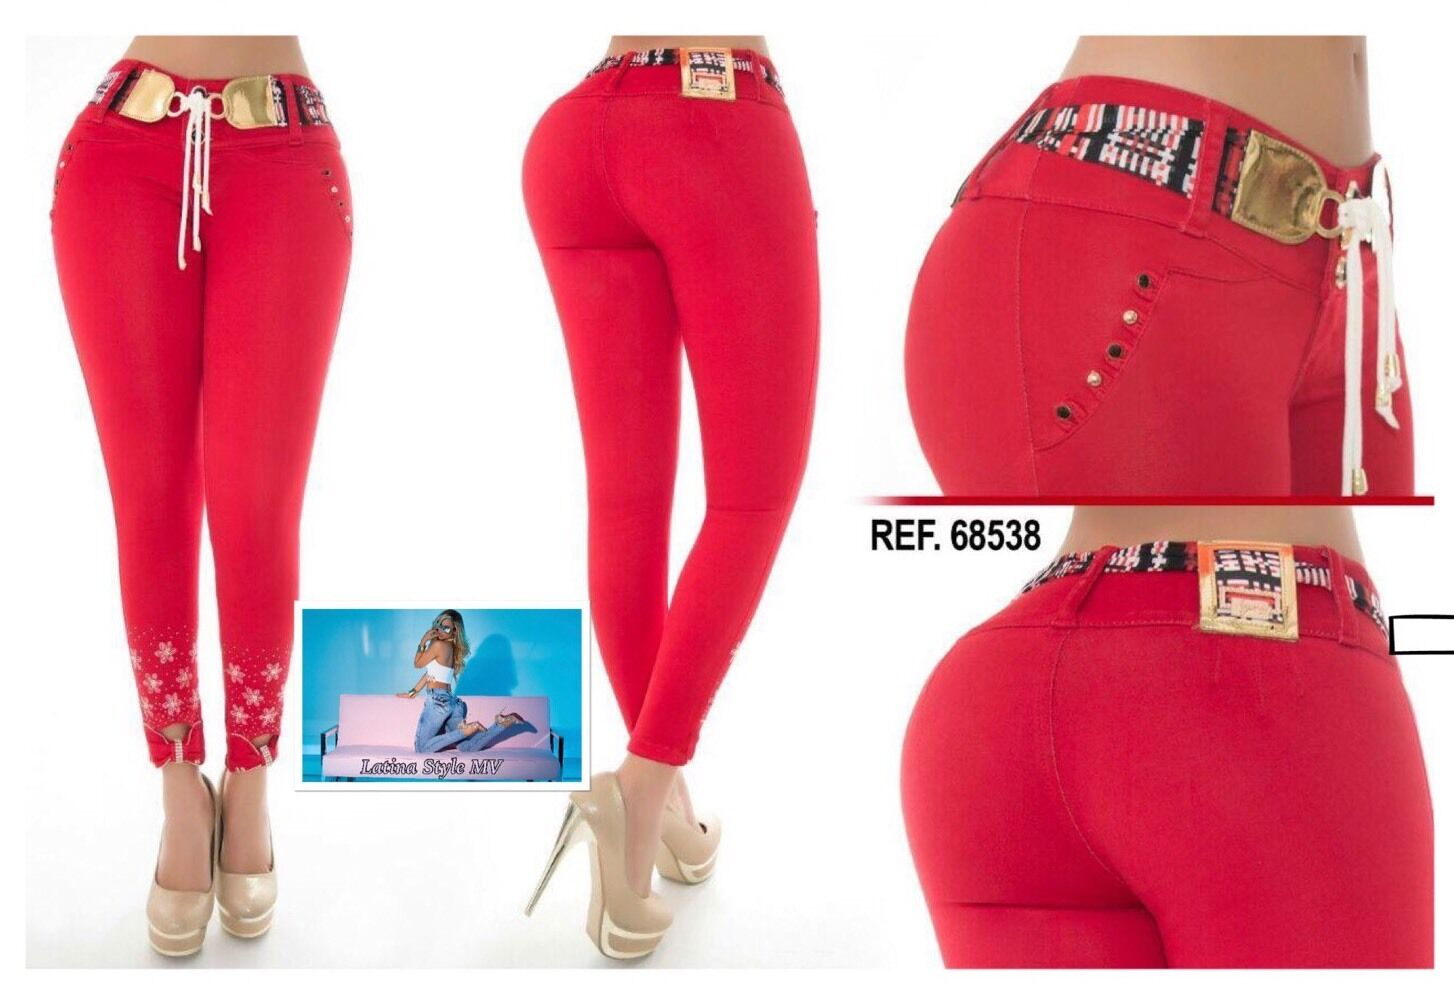 Colombian Butt Lift Imported Jeans Size 1 2,3 4,5 6 USA